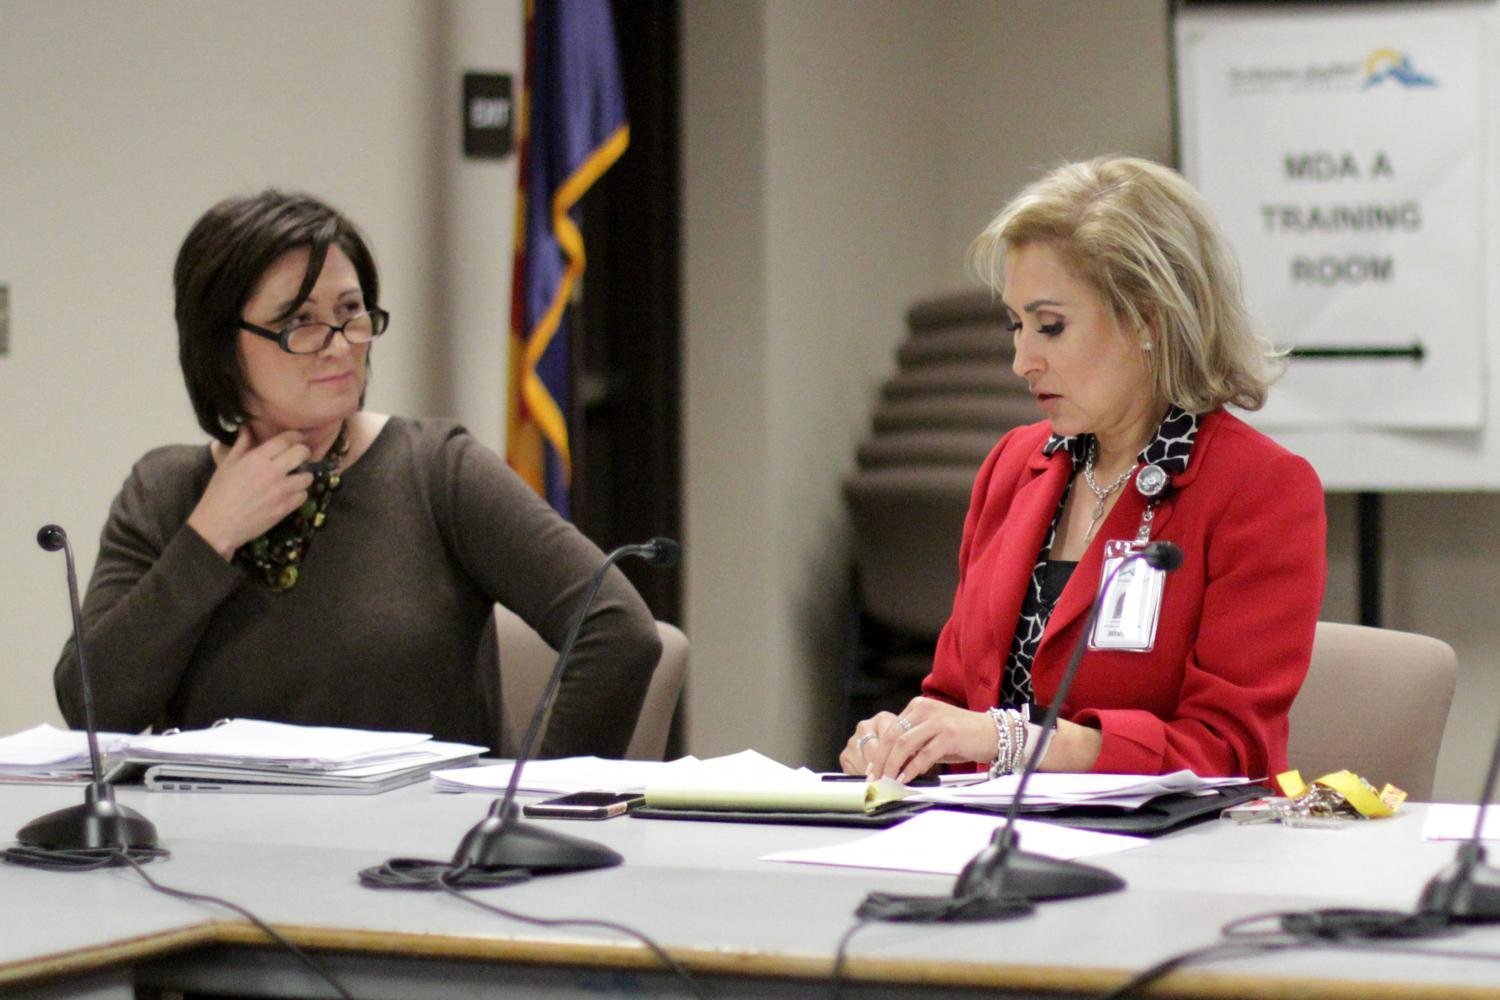 SUSD Governing Board President Barbara Perleberg and Acting Superintendent Amy Fuller.